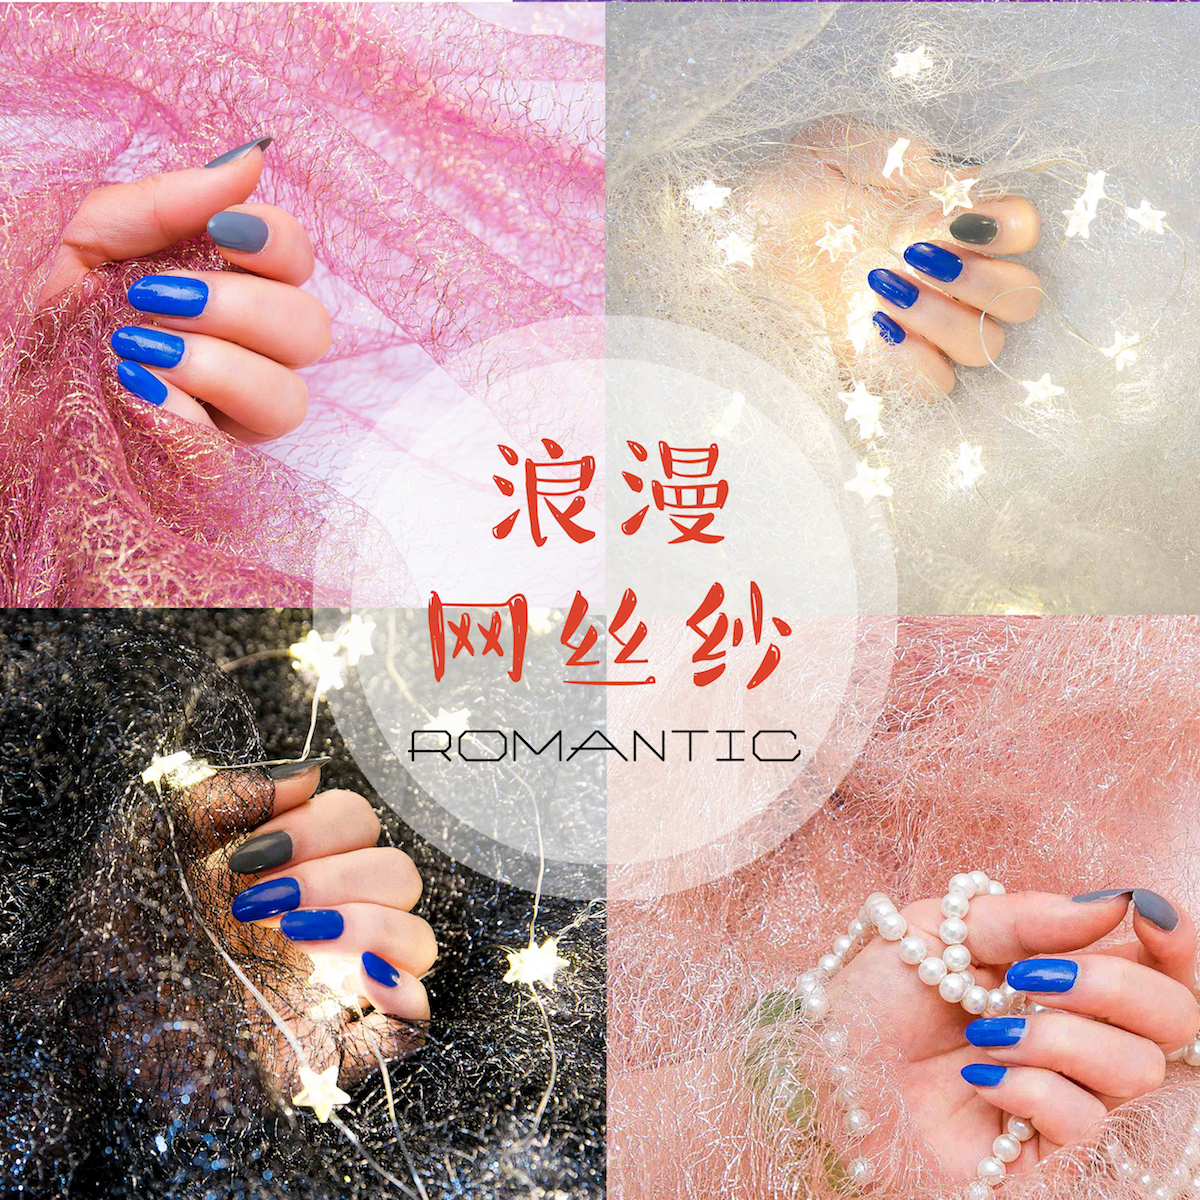 Usd 623 Japanese Ins Nail Art Photo Yarn Live Background Cloth